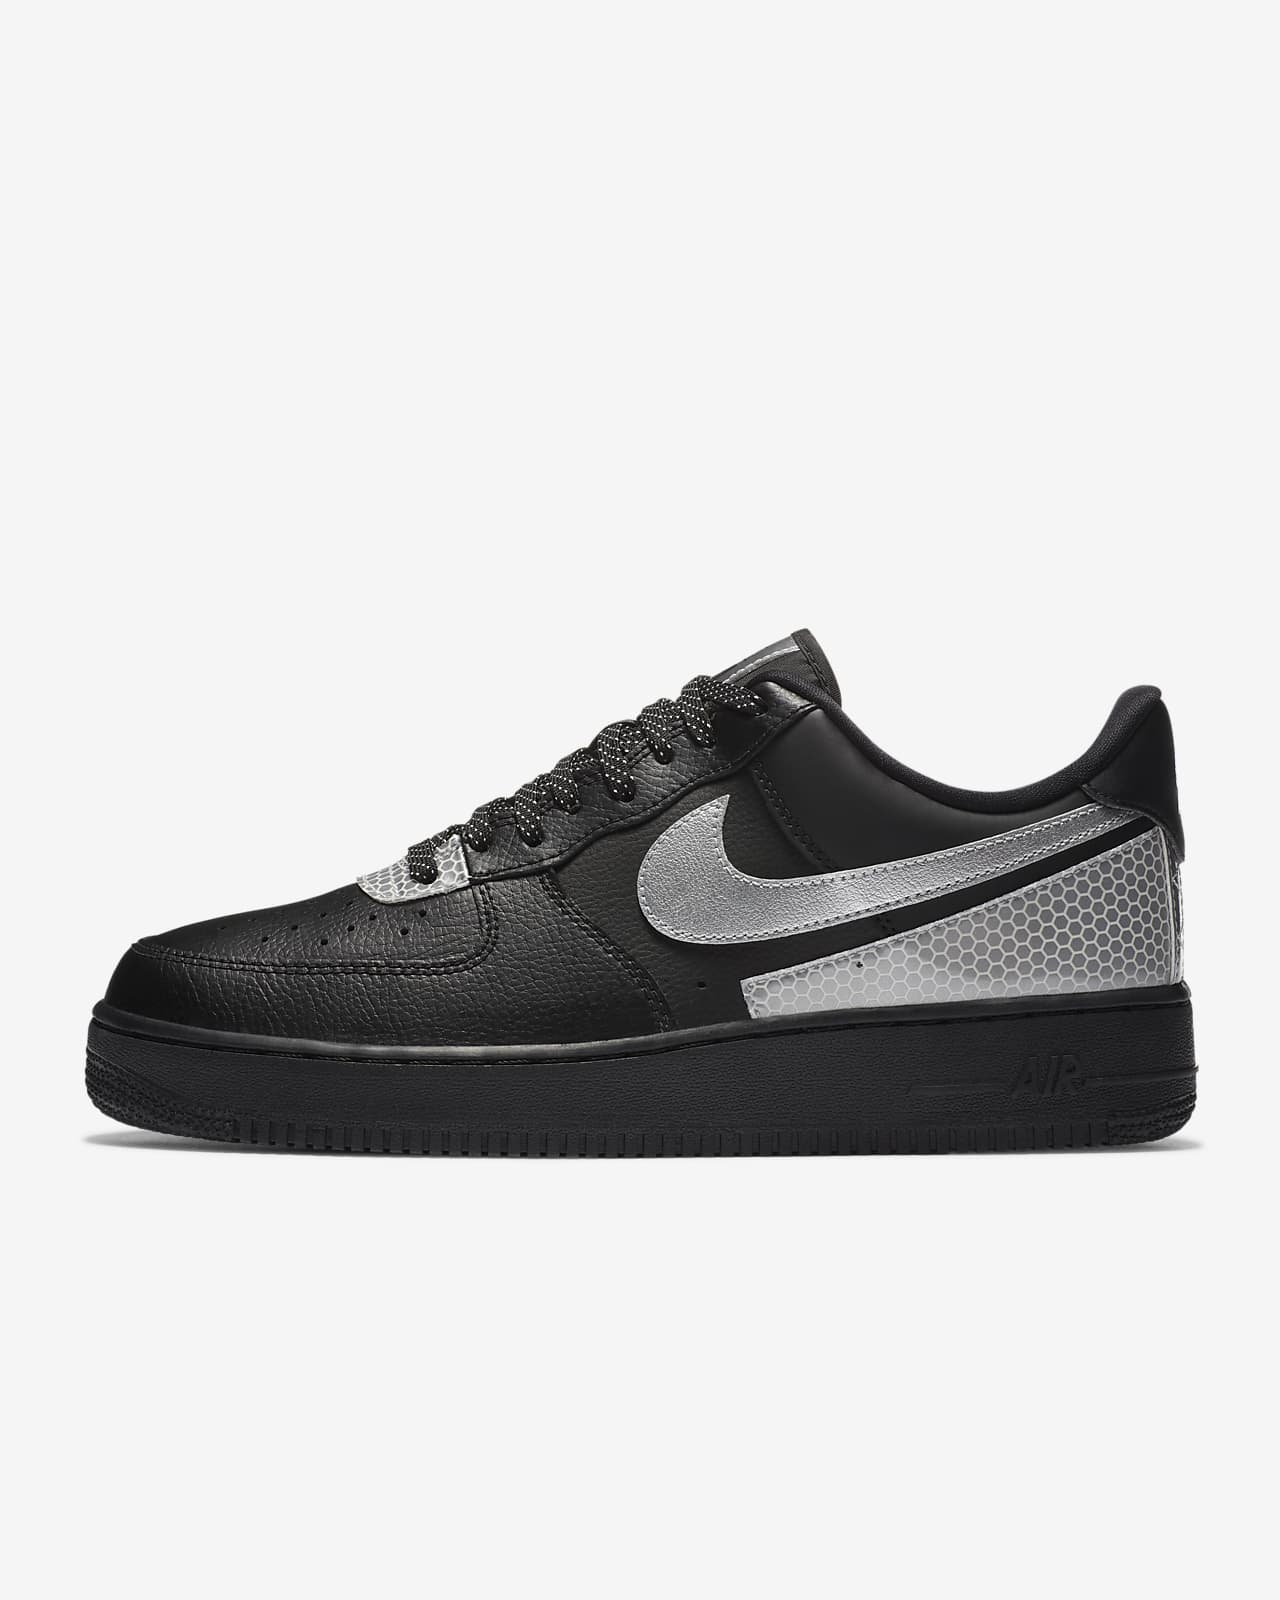 Chaussure Nike Air Force 1 '07 LV8 pour Homme